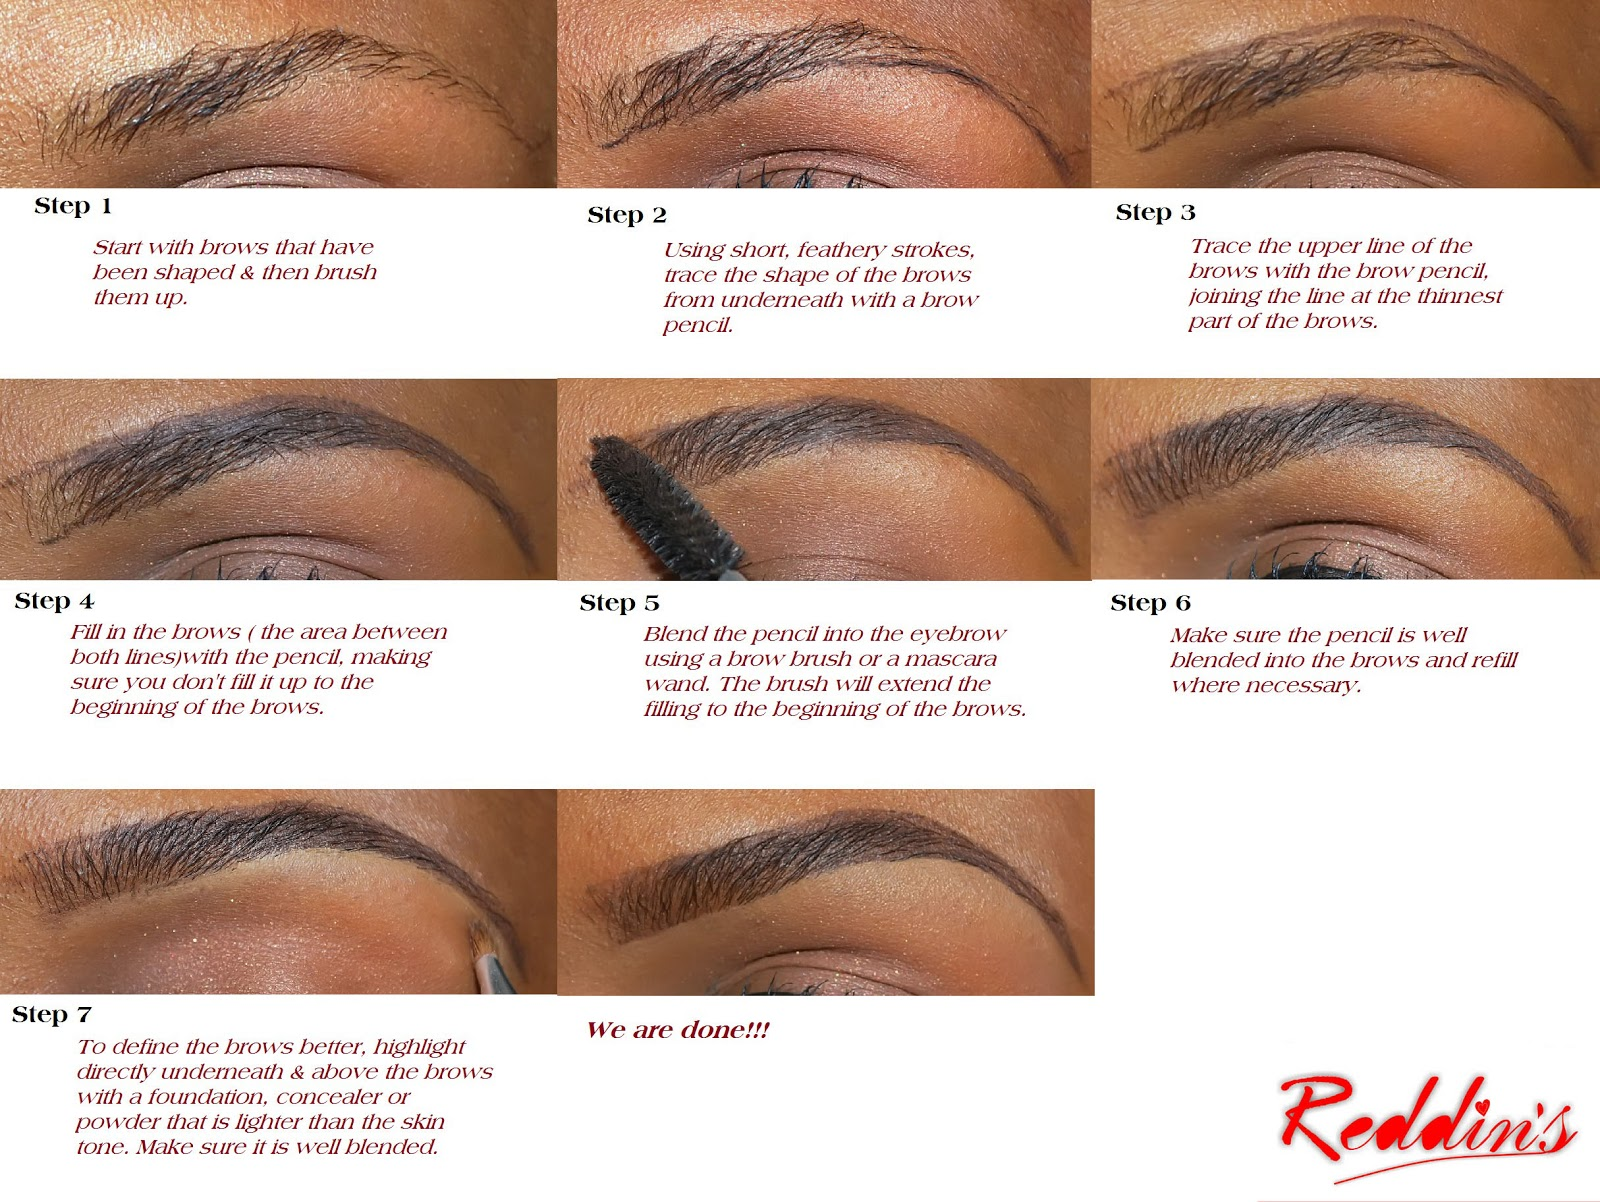 Reddins Beauty Eyebrow 202 How To Pencil Your Brows Perfectly